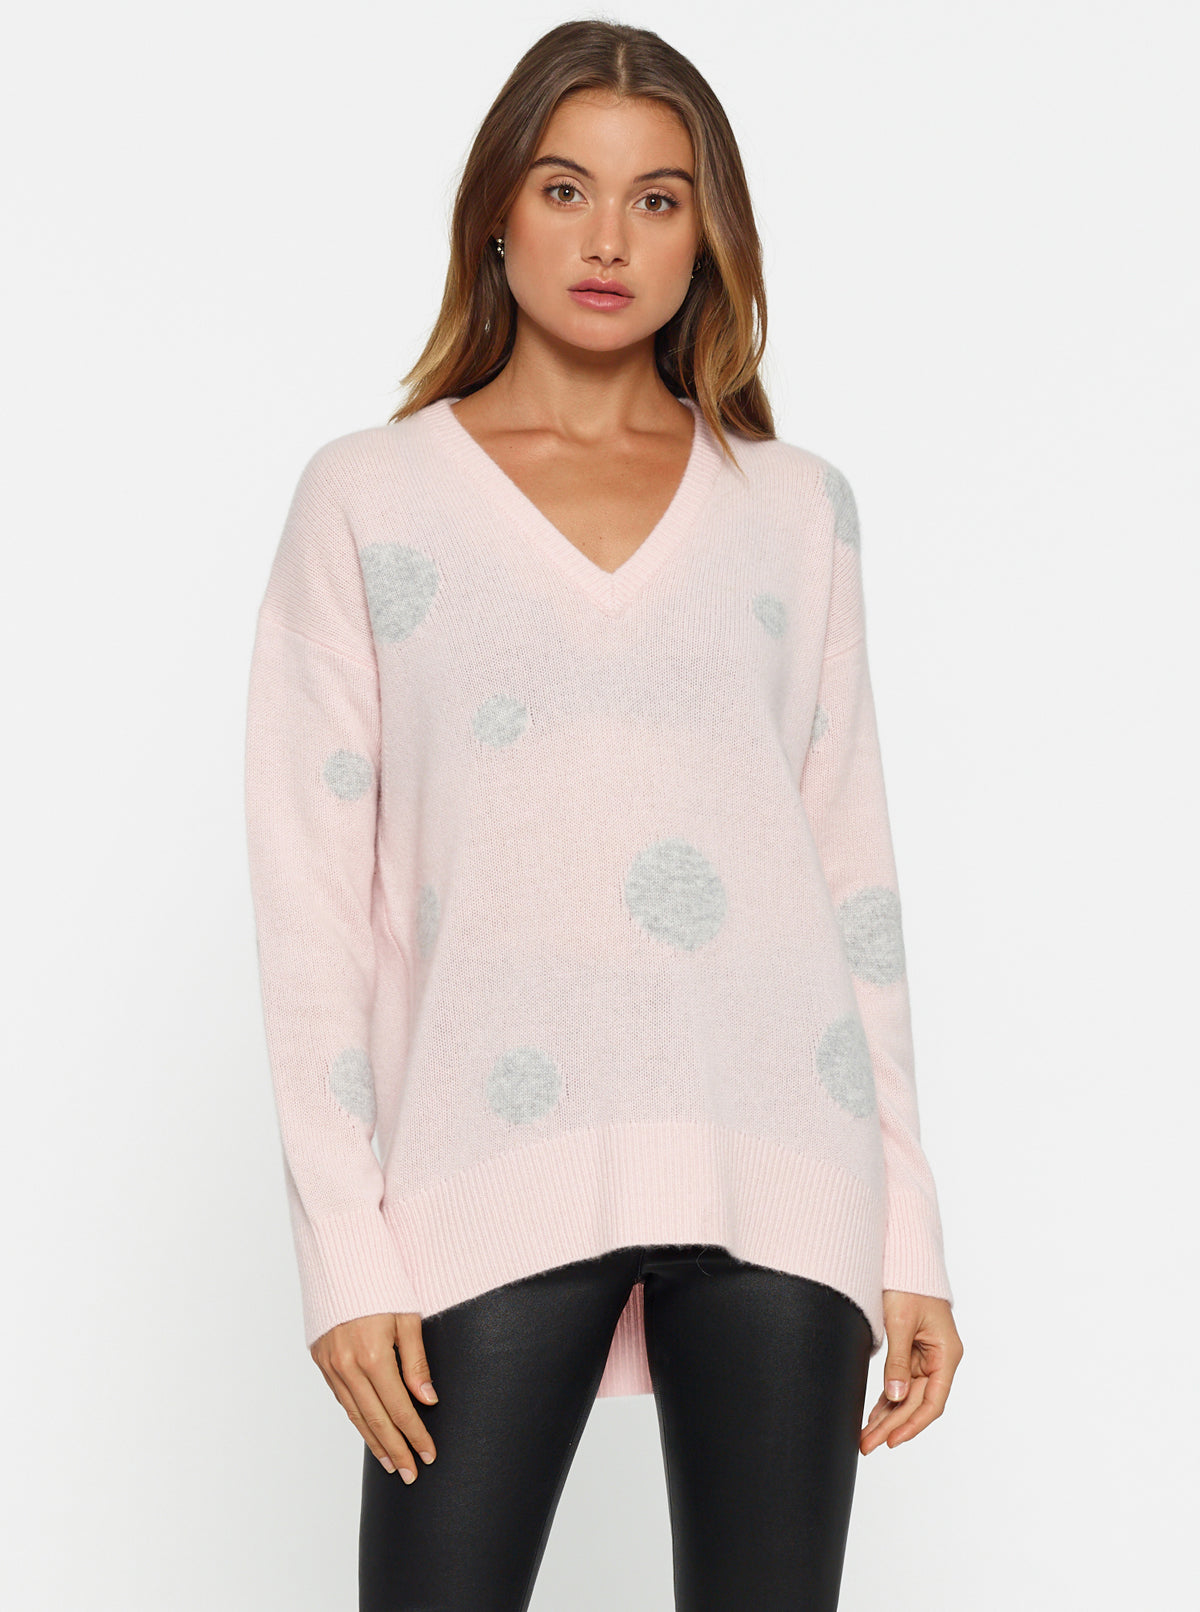 Nothing But Love Oversized V Neck Knit - Shell Pink/Grey Marle Spot